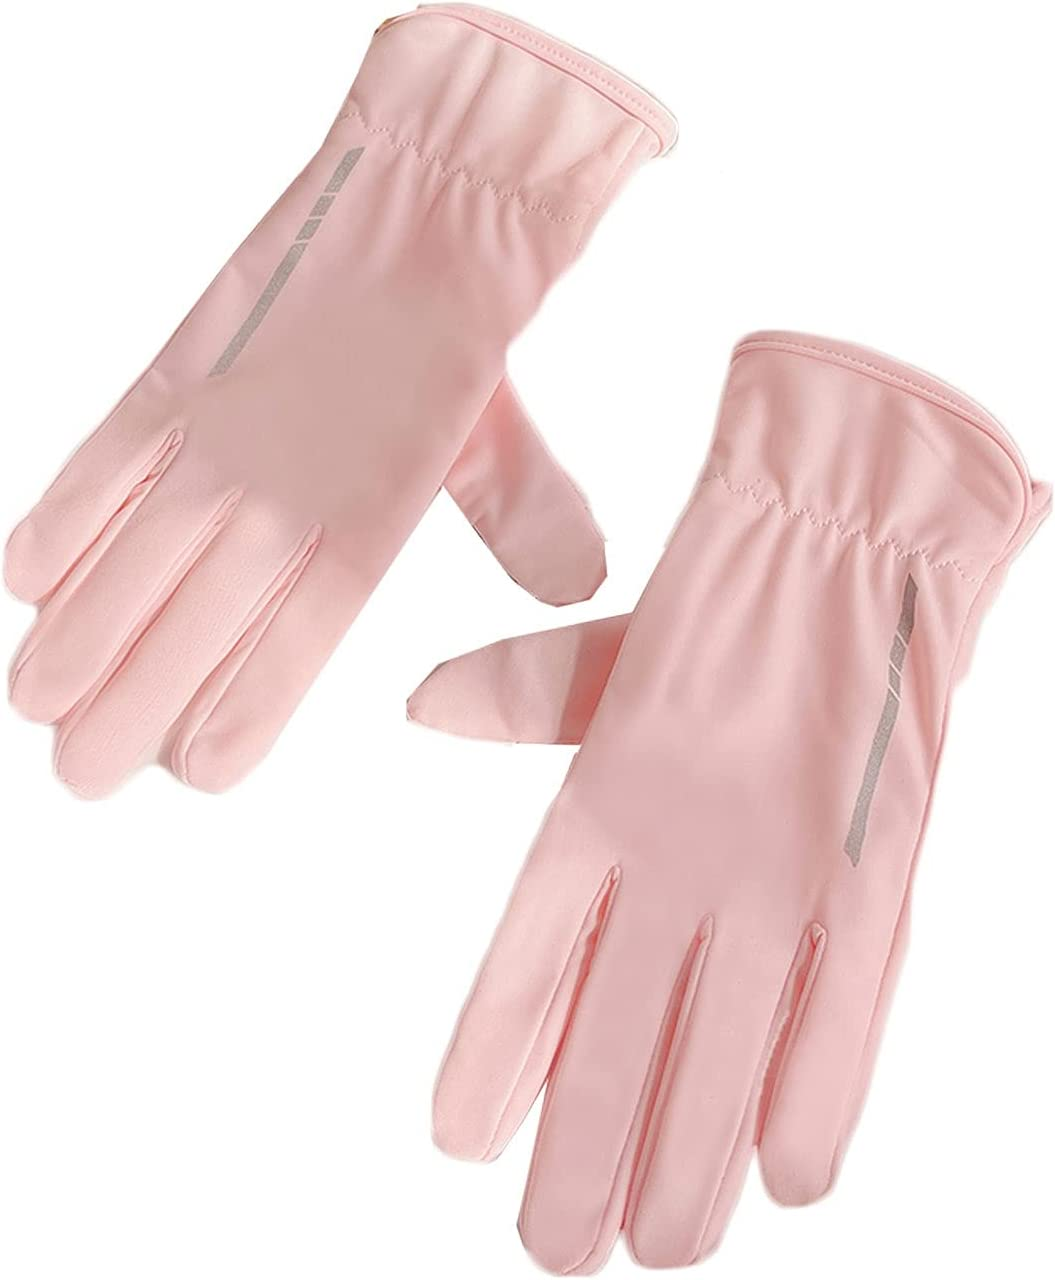 Thin Gloves Sunscreen Gloves Female Summer Thin Ice Silk Riding Spring and Autumn Can Touch Screen Warm Gloves (Color : Pink)